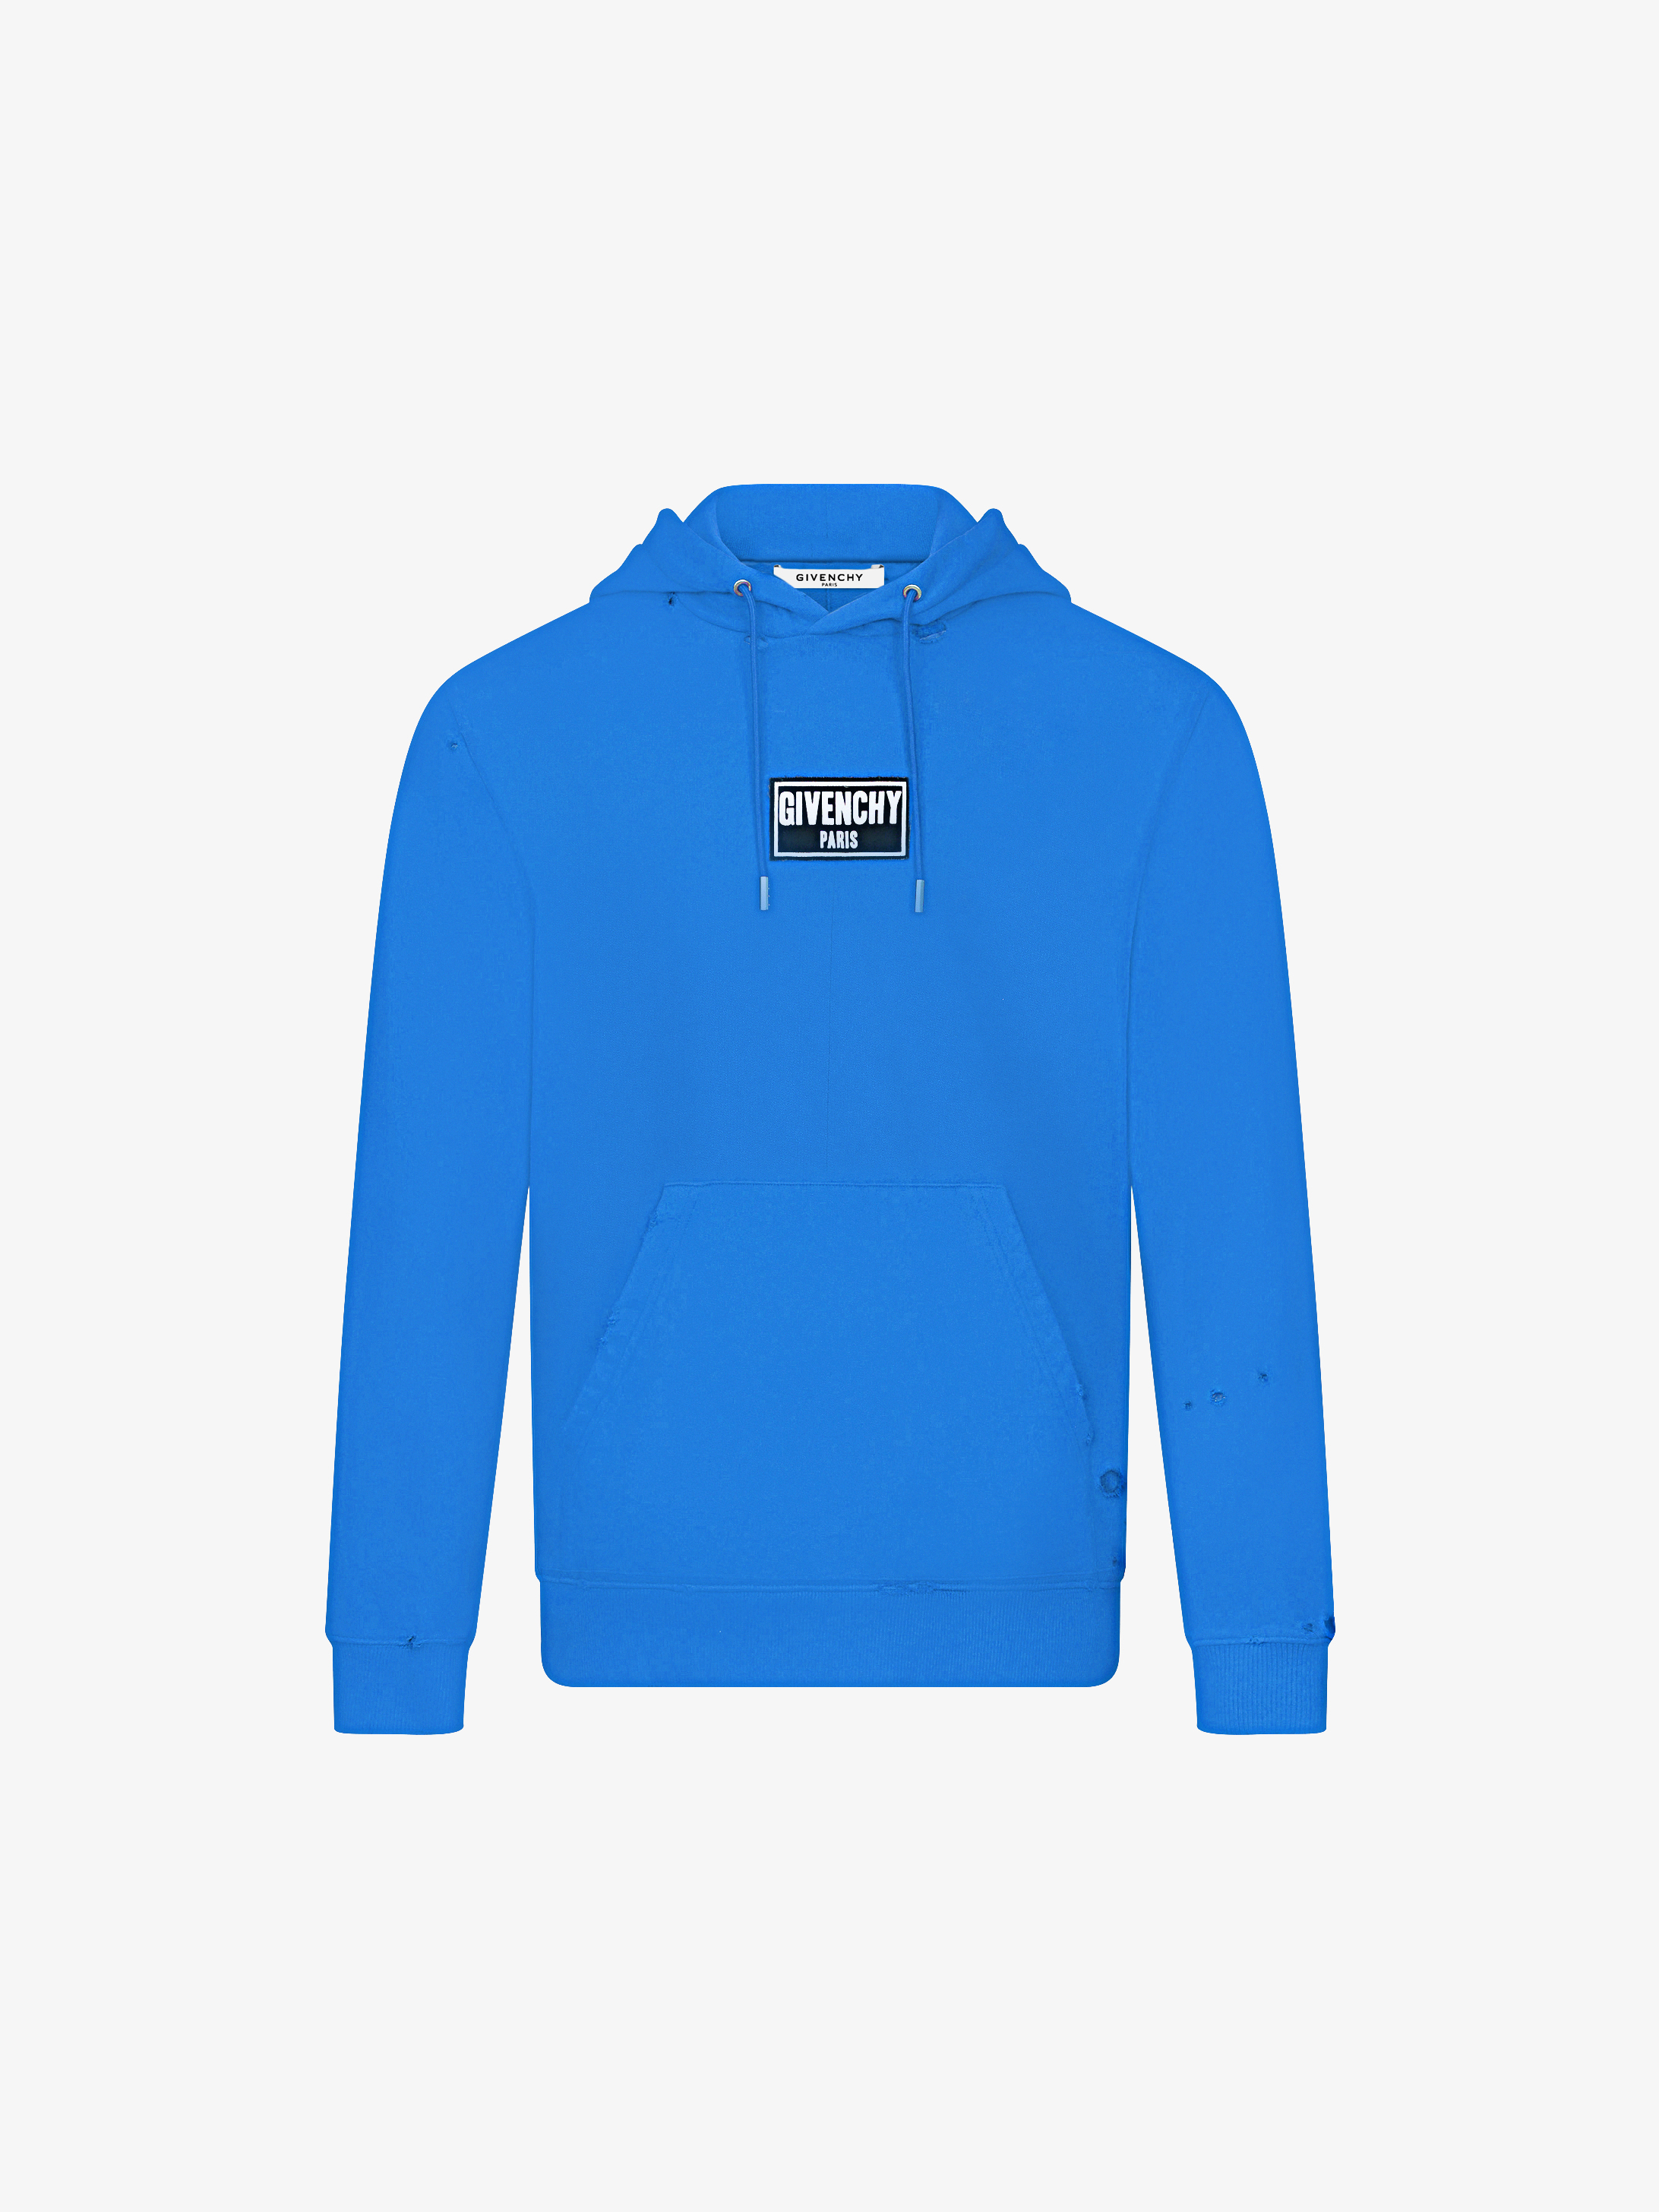 GIVENCHY PARIS patch destroyed hoodie